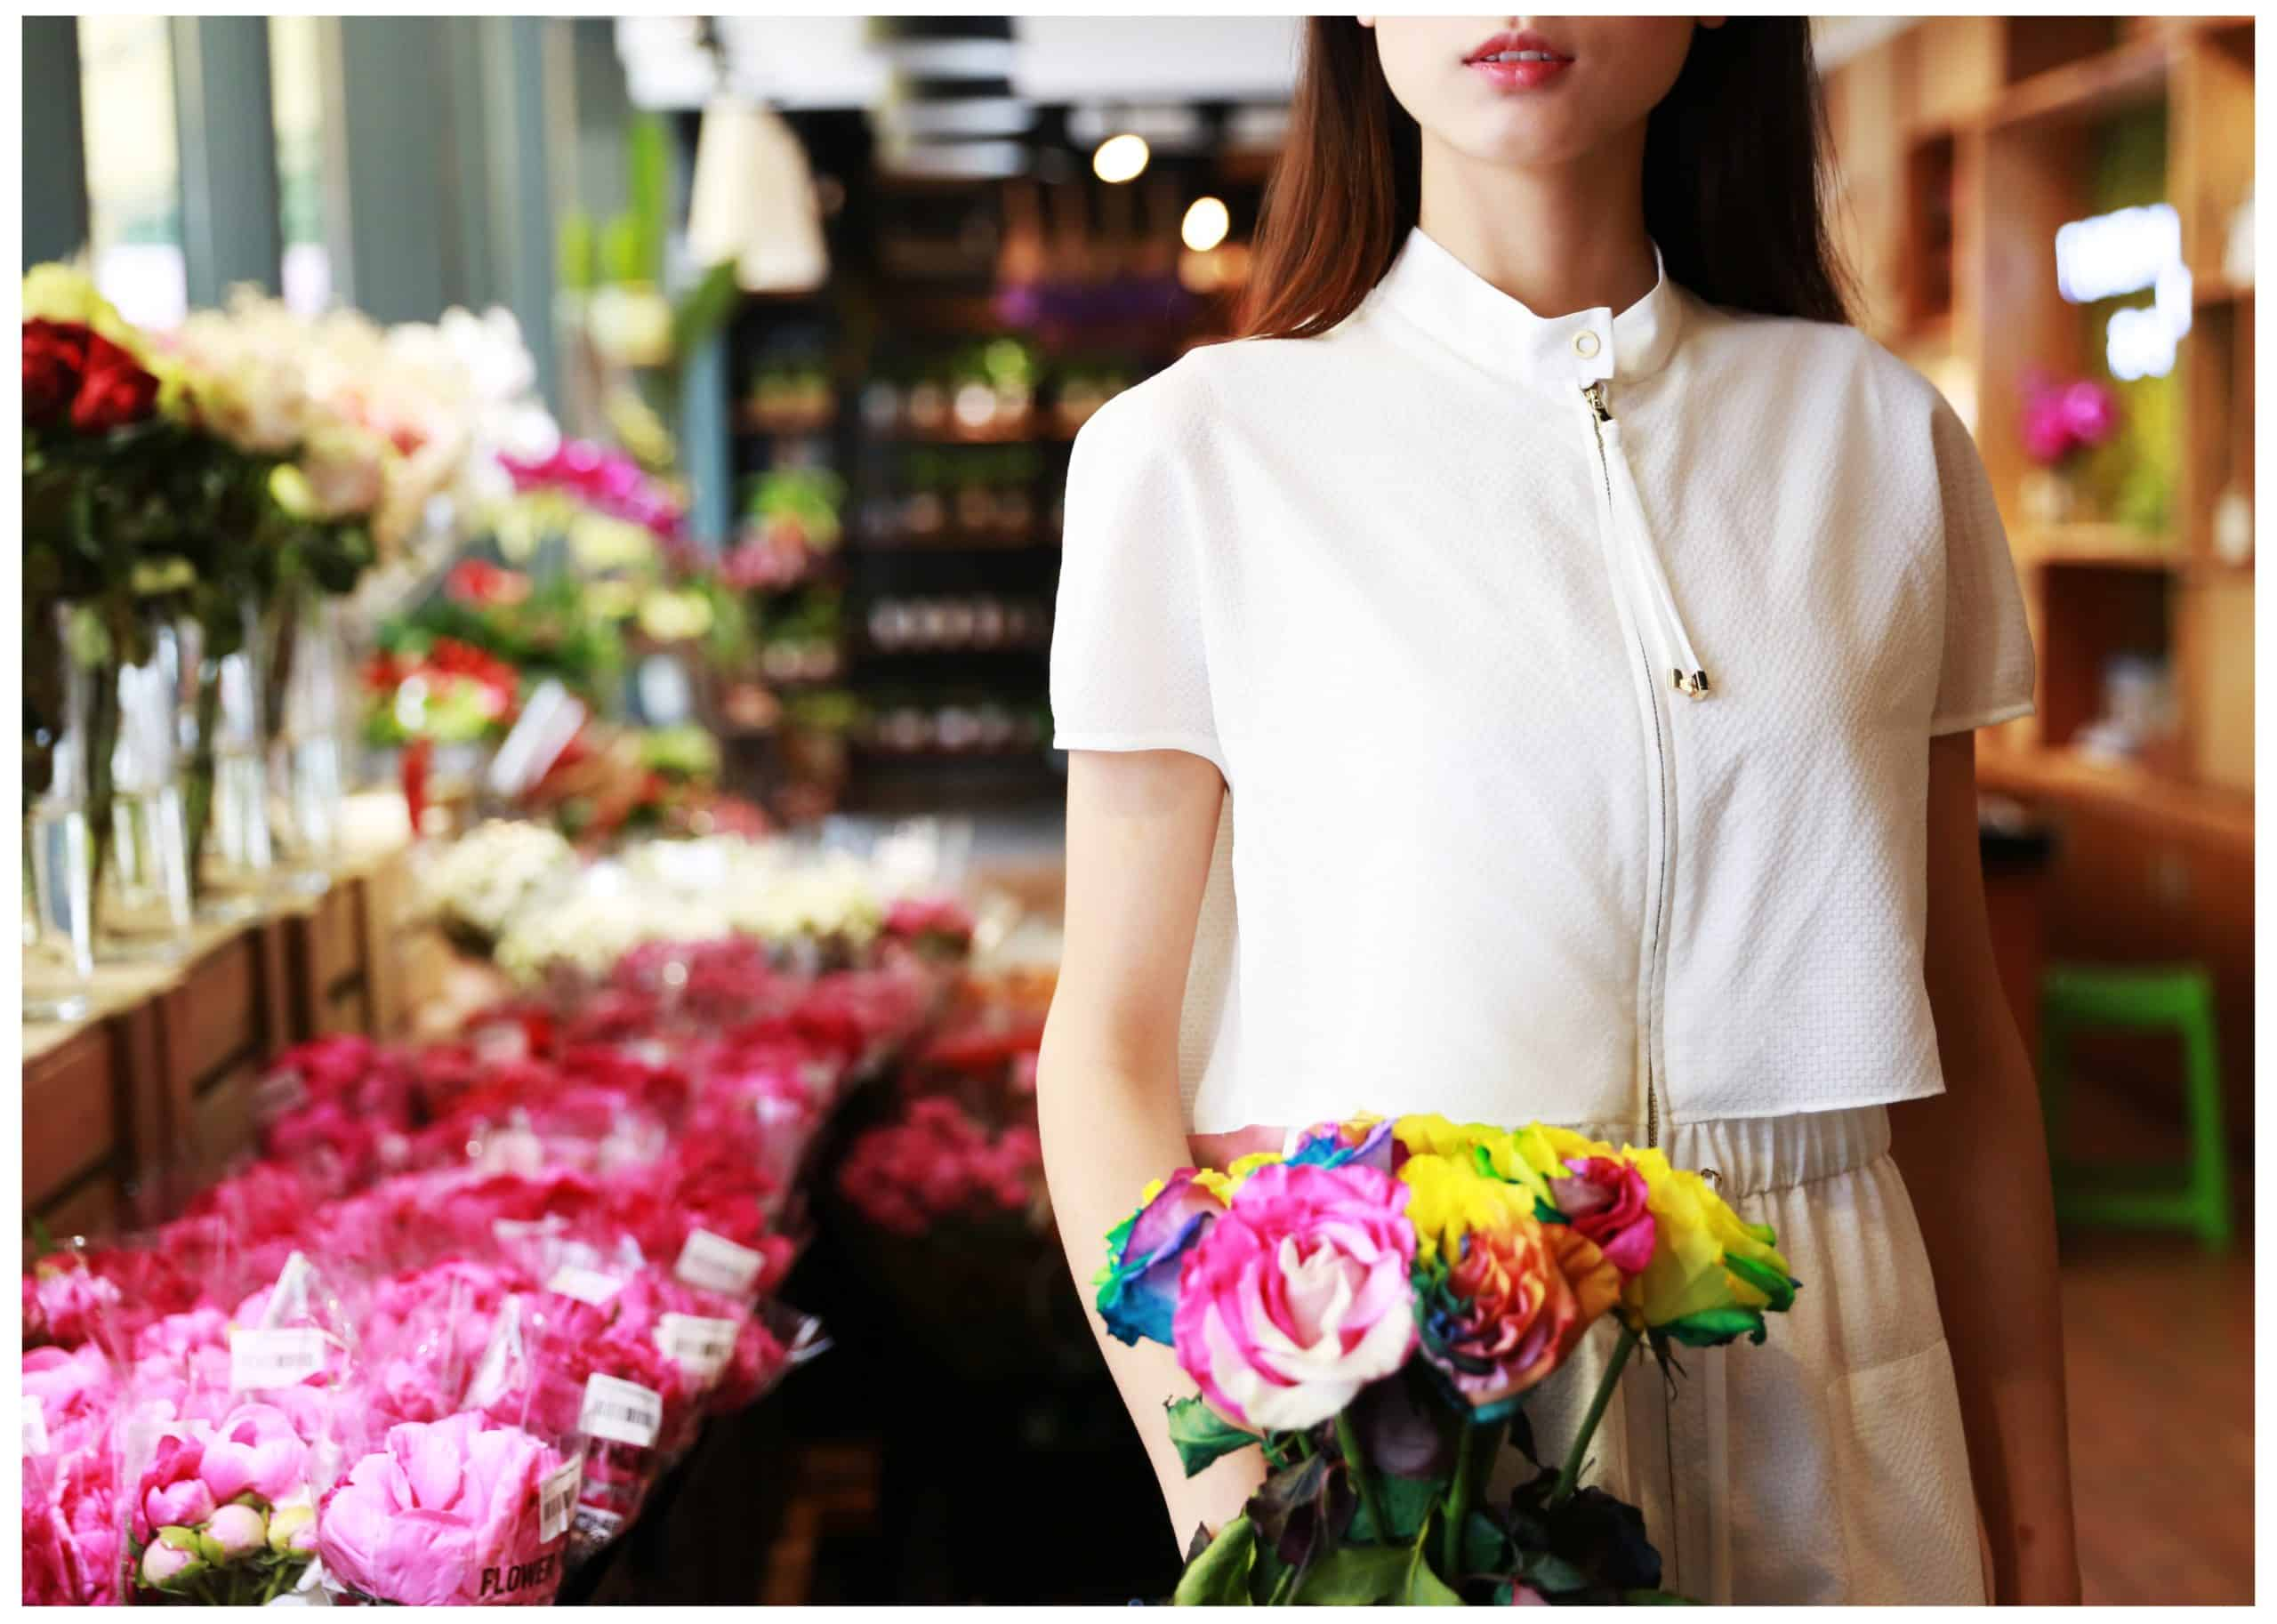 Flower Shop - 6 Things To Do Before You Open One